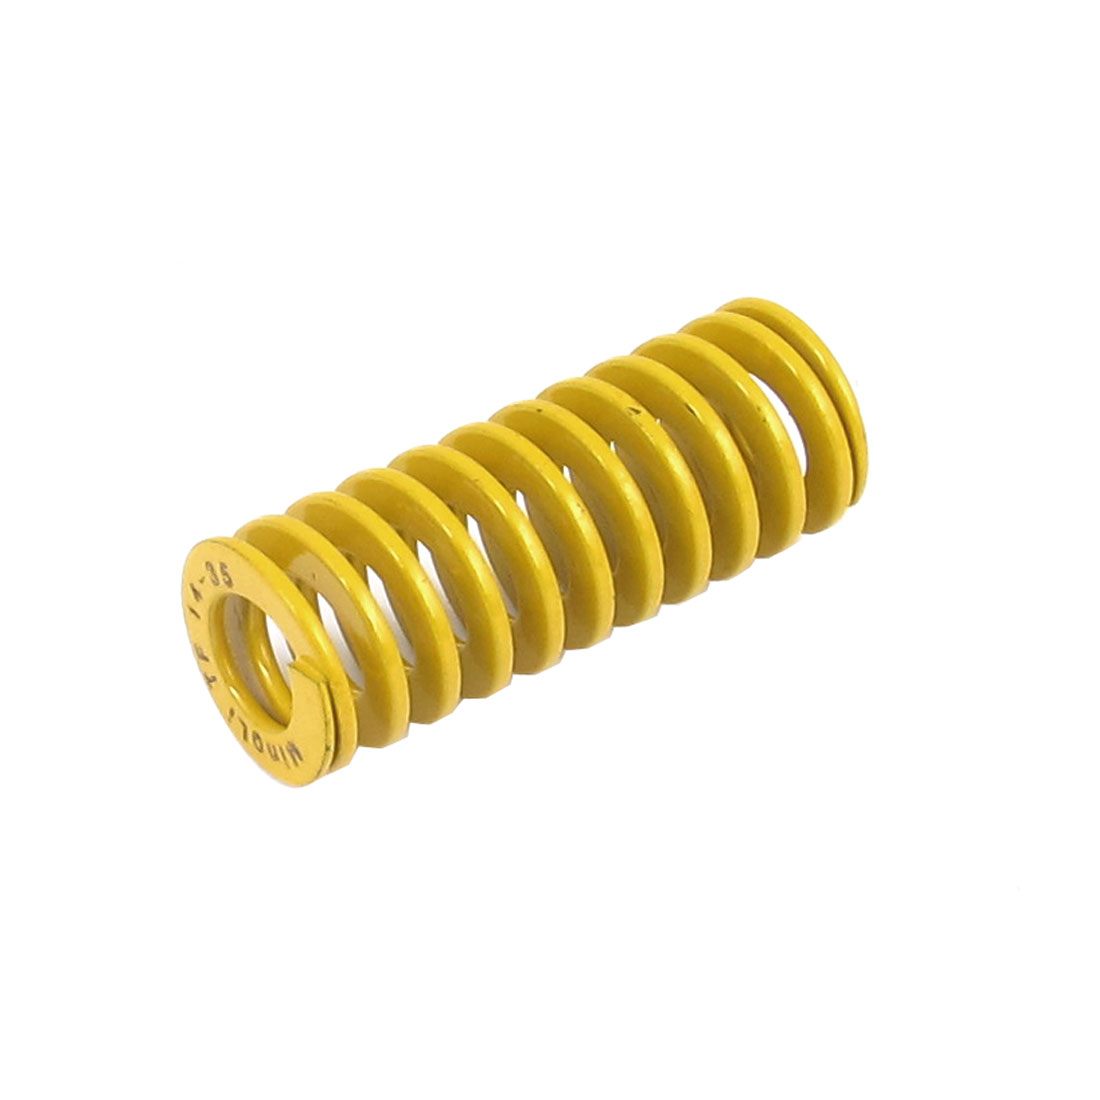 14mmx35mm Chromium Alloy Steel Lightest Load Die Spring Yellow